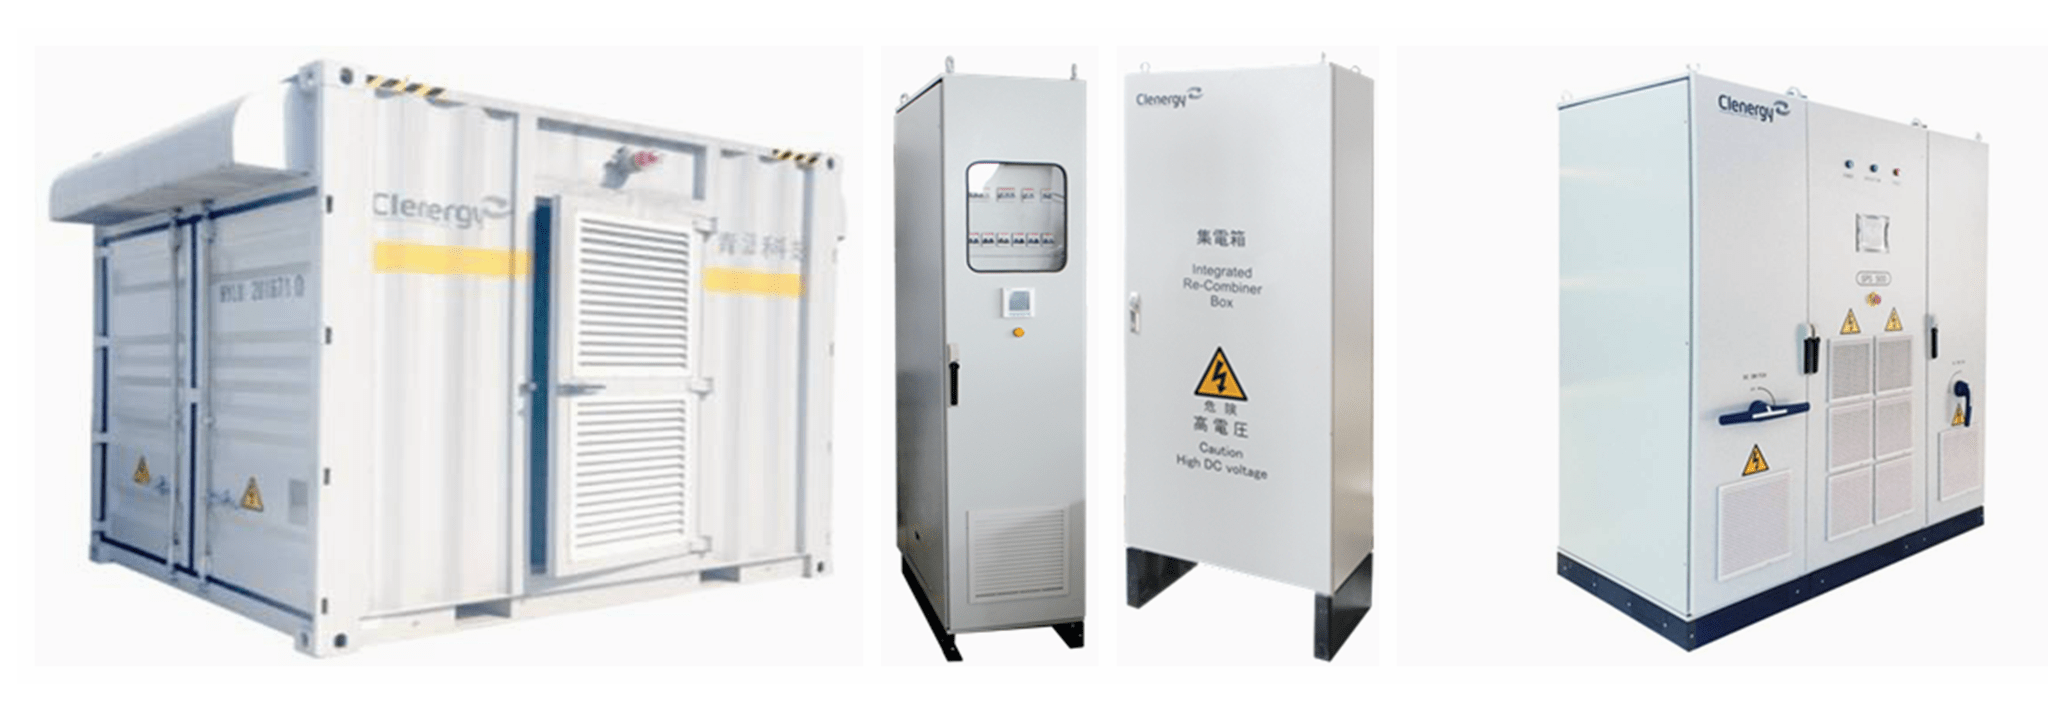 Clenergy Launches Inverter and Power and Electronics Products